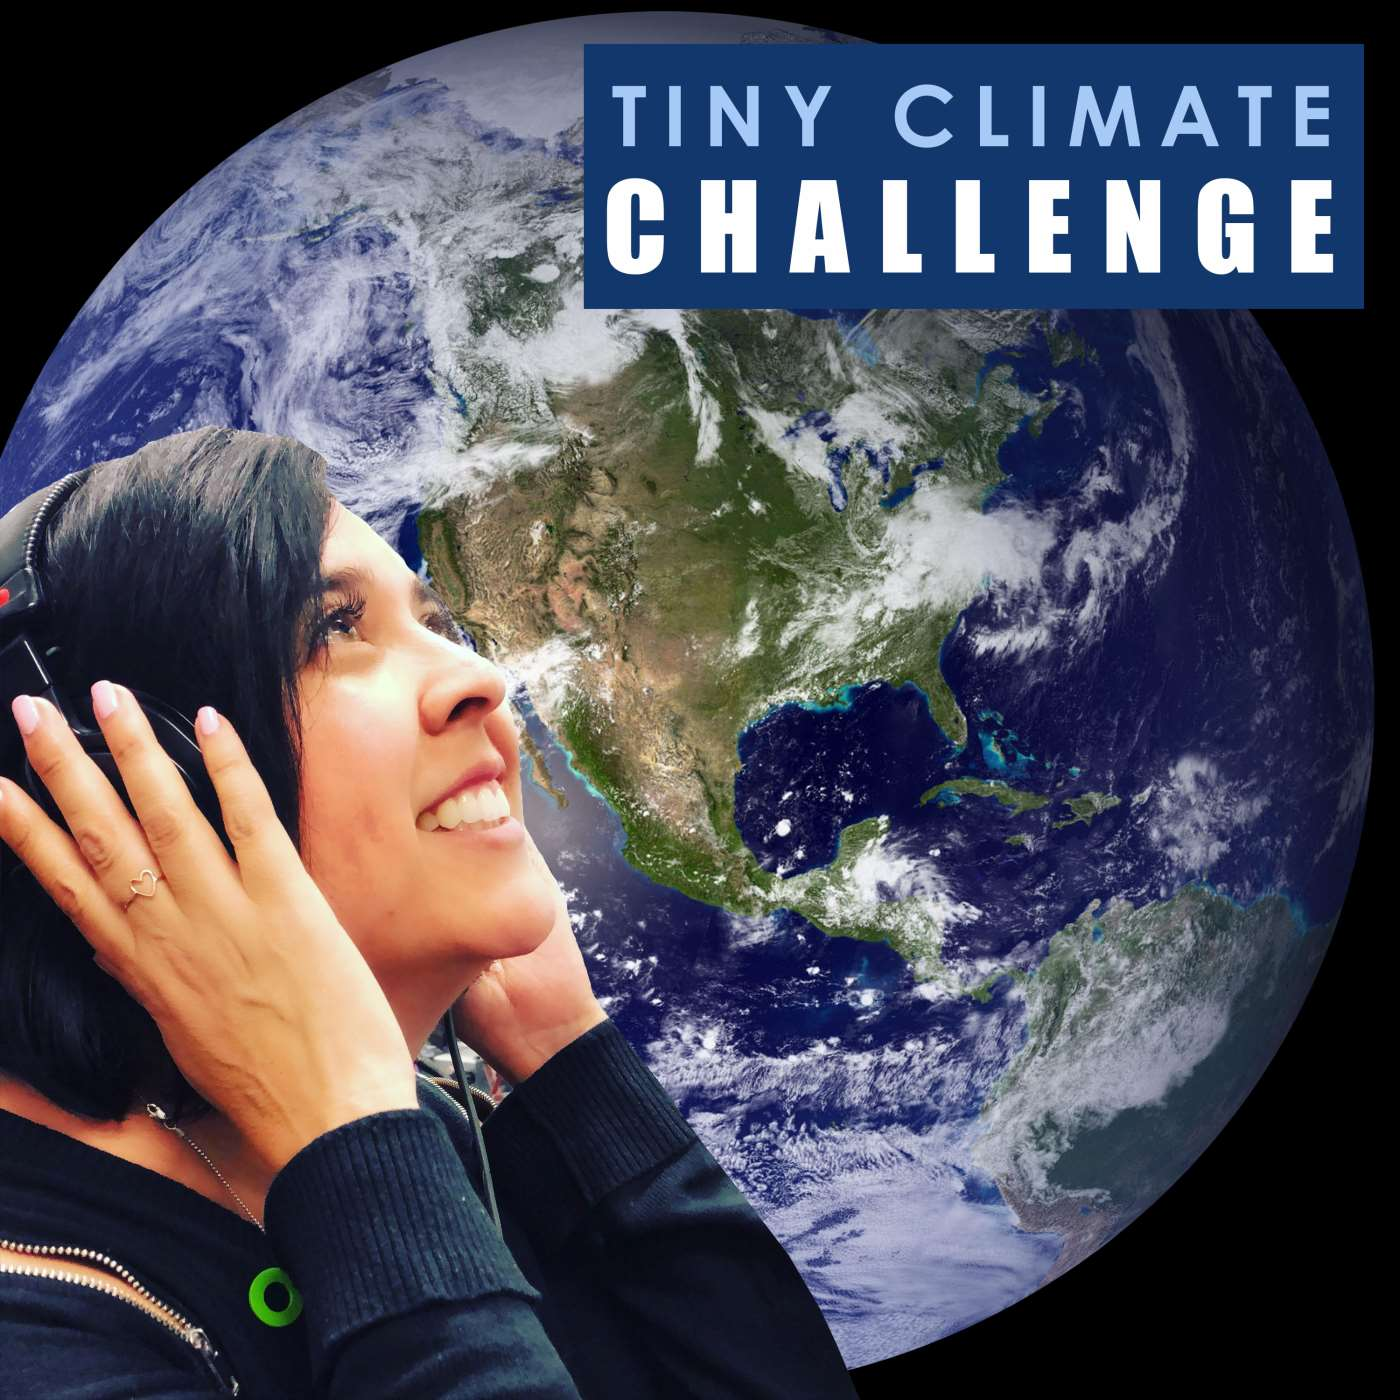 Tiny Climate Challenge is a podcast dedicated to helping busy people save the planet by completing one simple eco-challenge at a time.